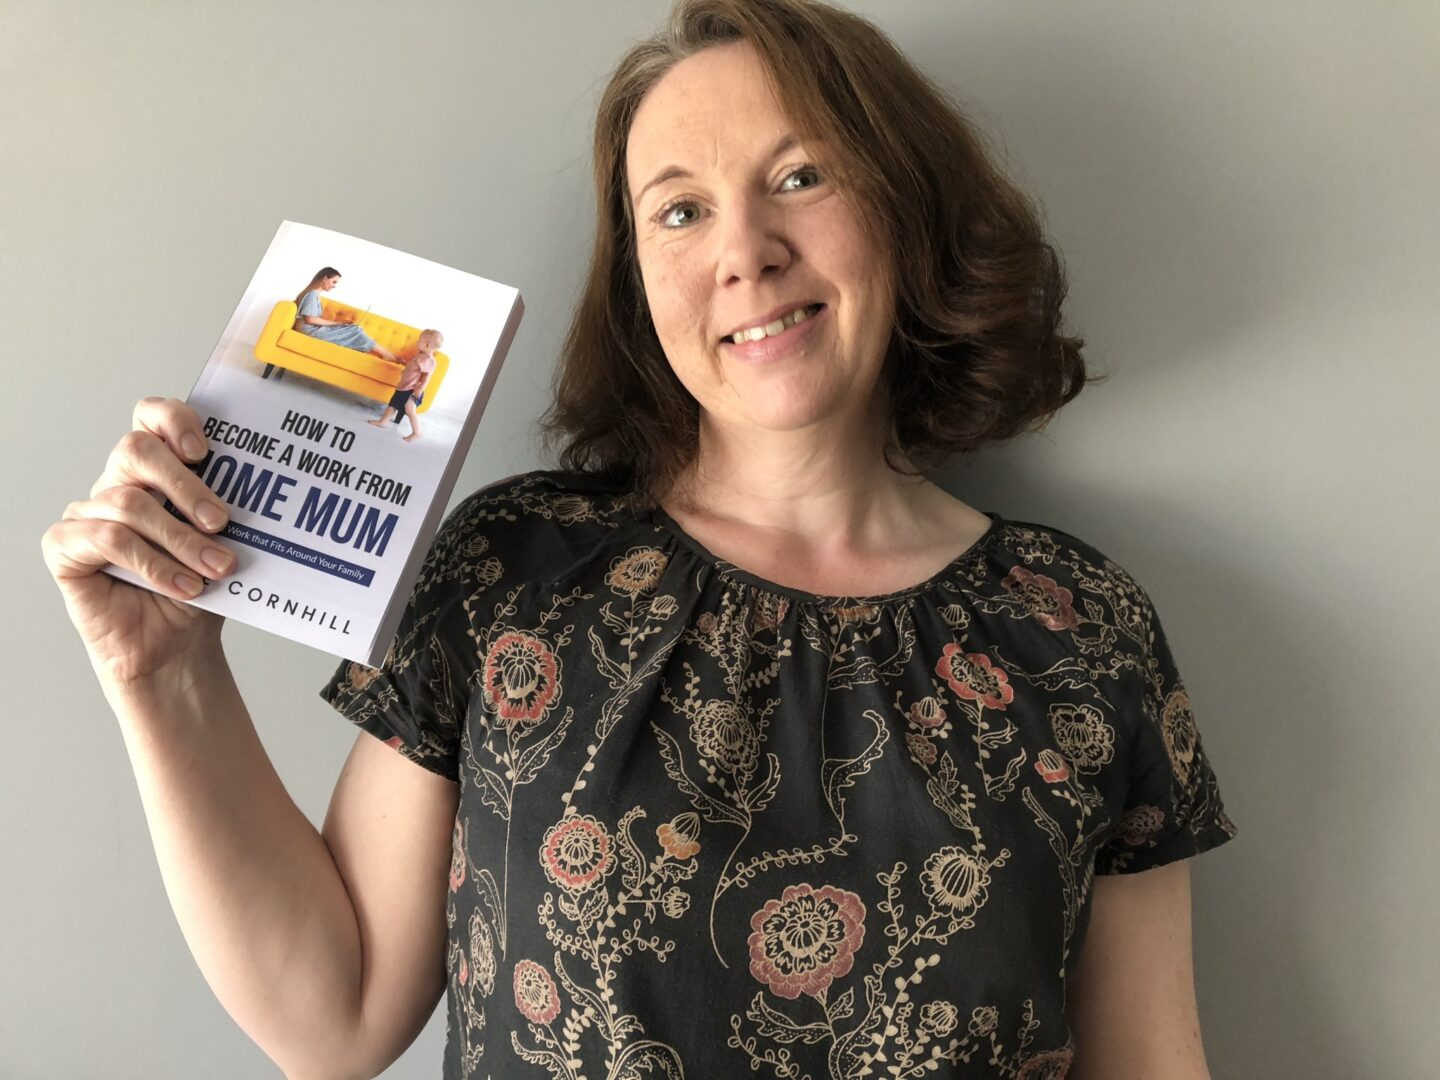 Author holding work from home mum book